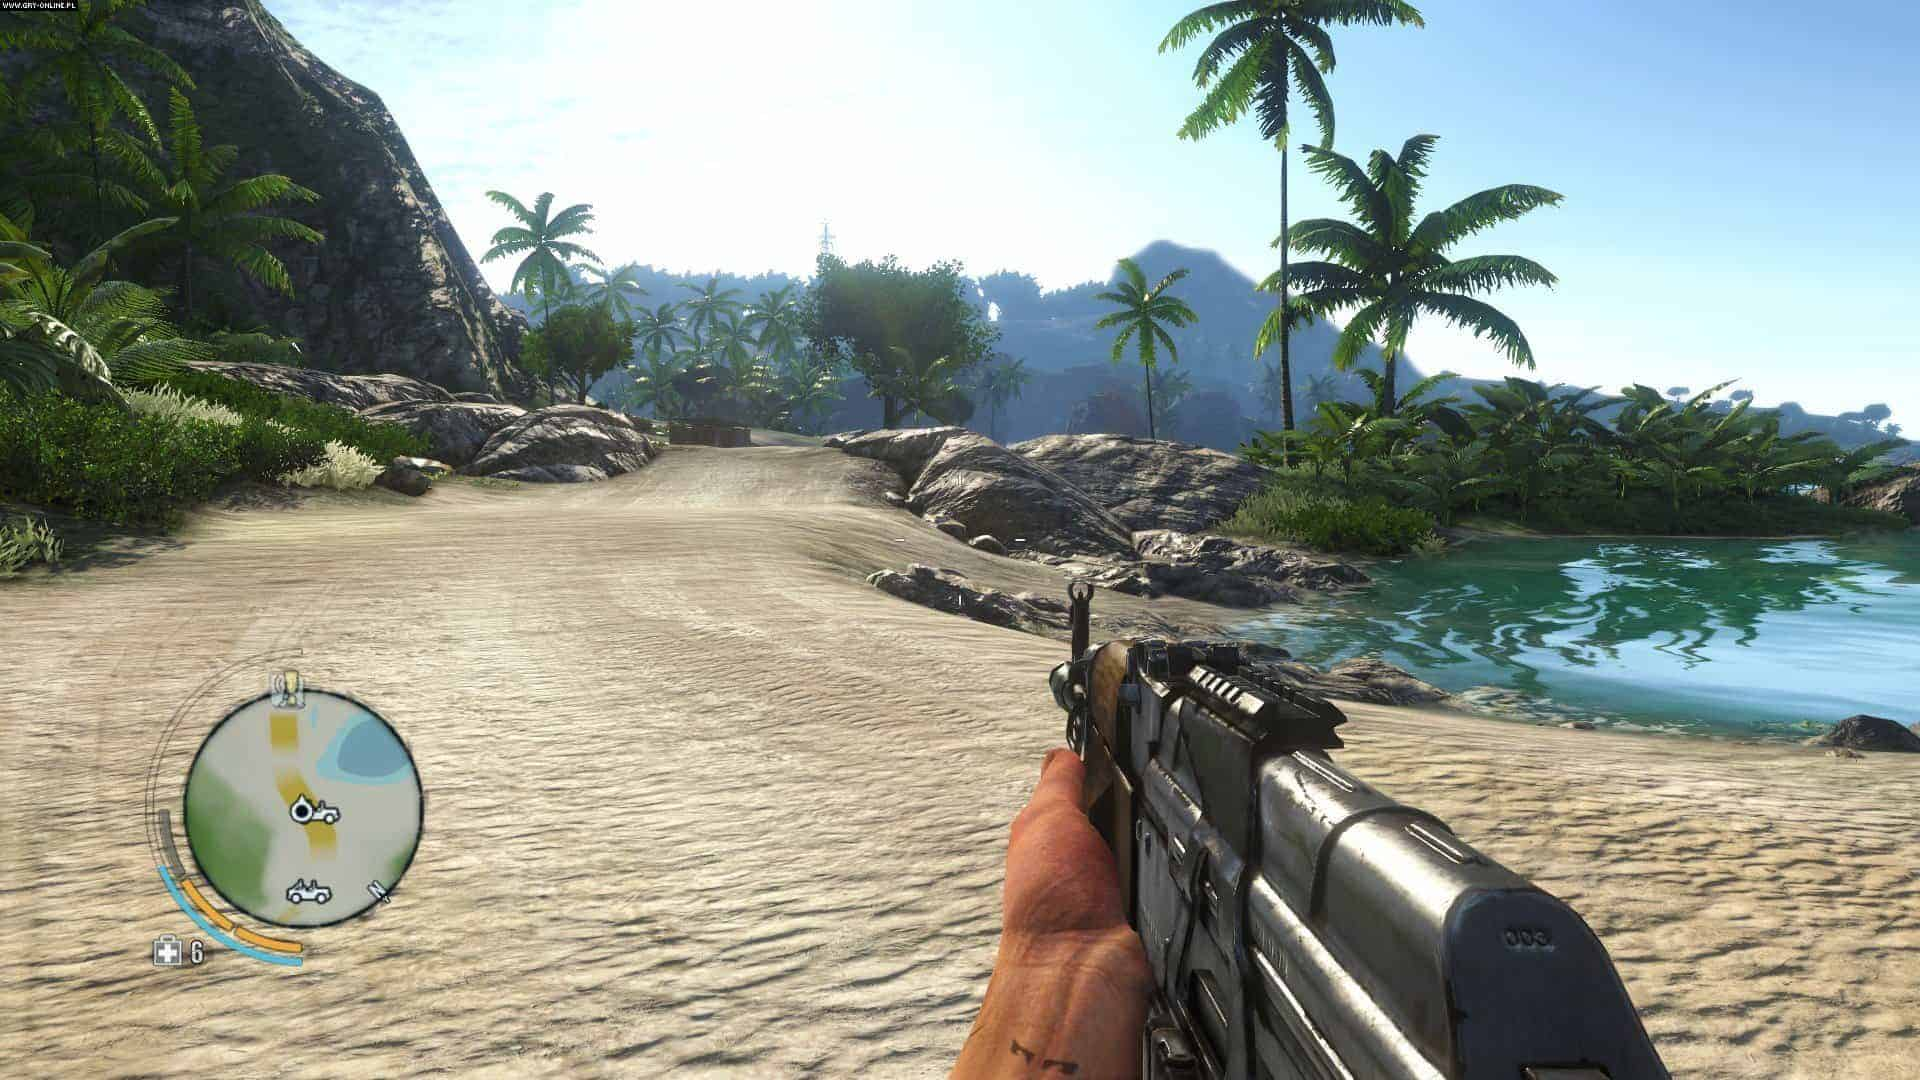 Far Cry 3 Free games download here - Install-Game